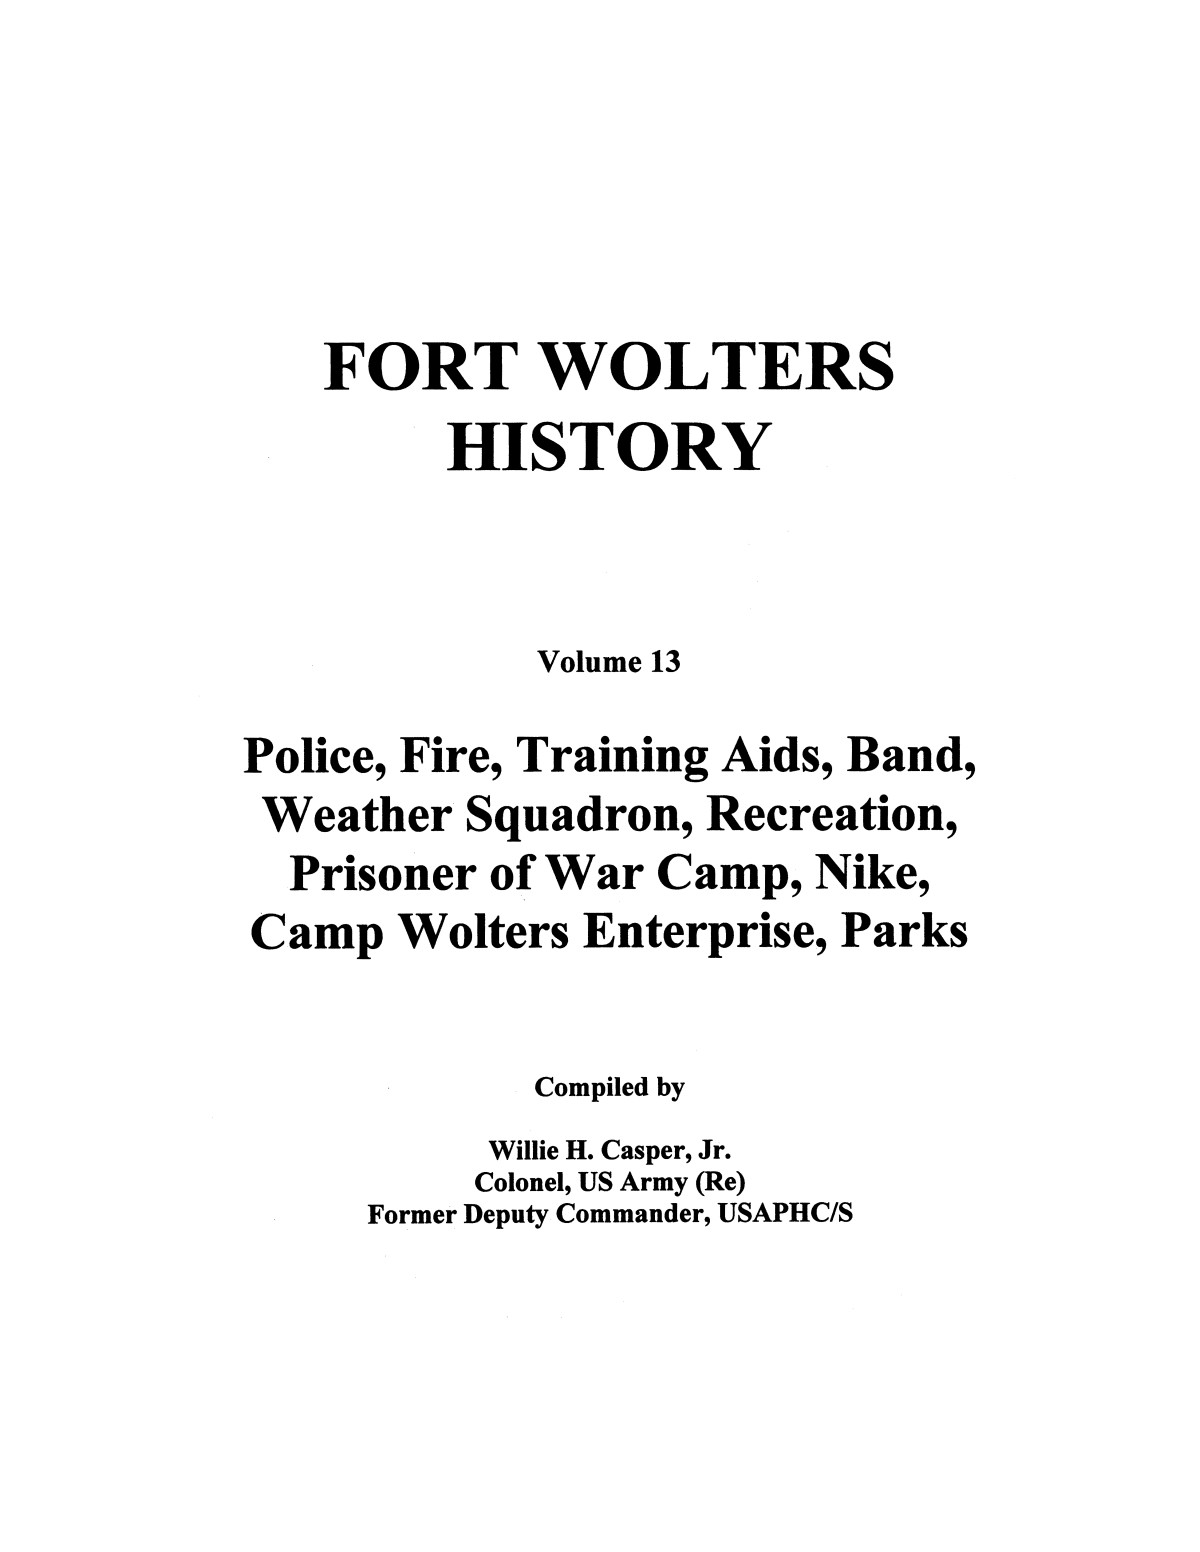 Pictorial History of Fort Wolters, Volume 13: Police, Fire, Training Aids, Band, Weather Squadron, Recreation, Prisoner of War Camp, Nike, Camp Wolters Enterprise, Parks                                                                                                      [Sequence #]: 1 of 212